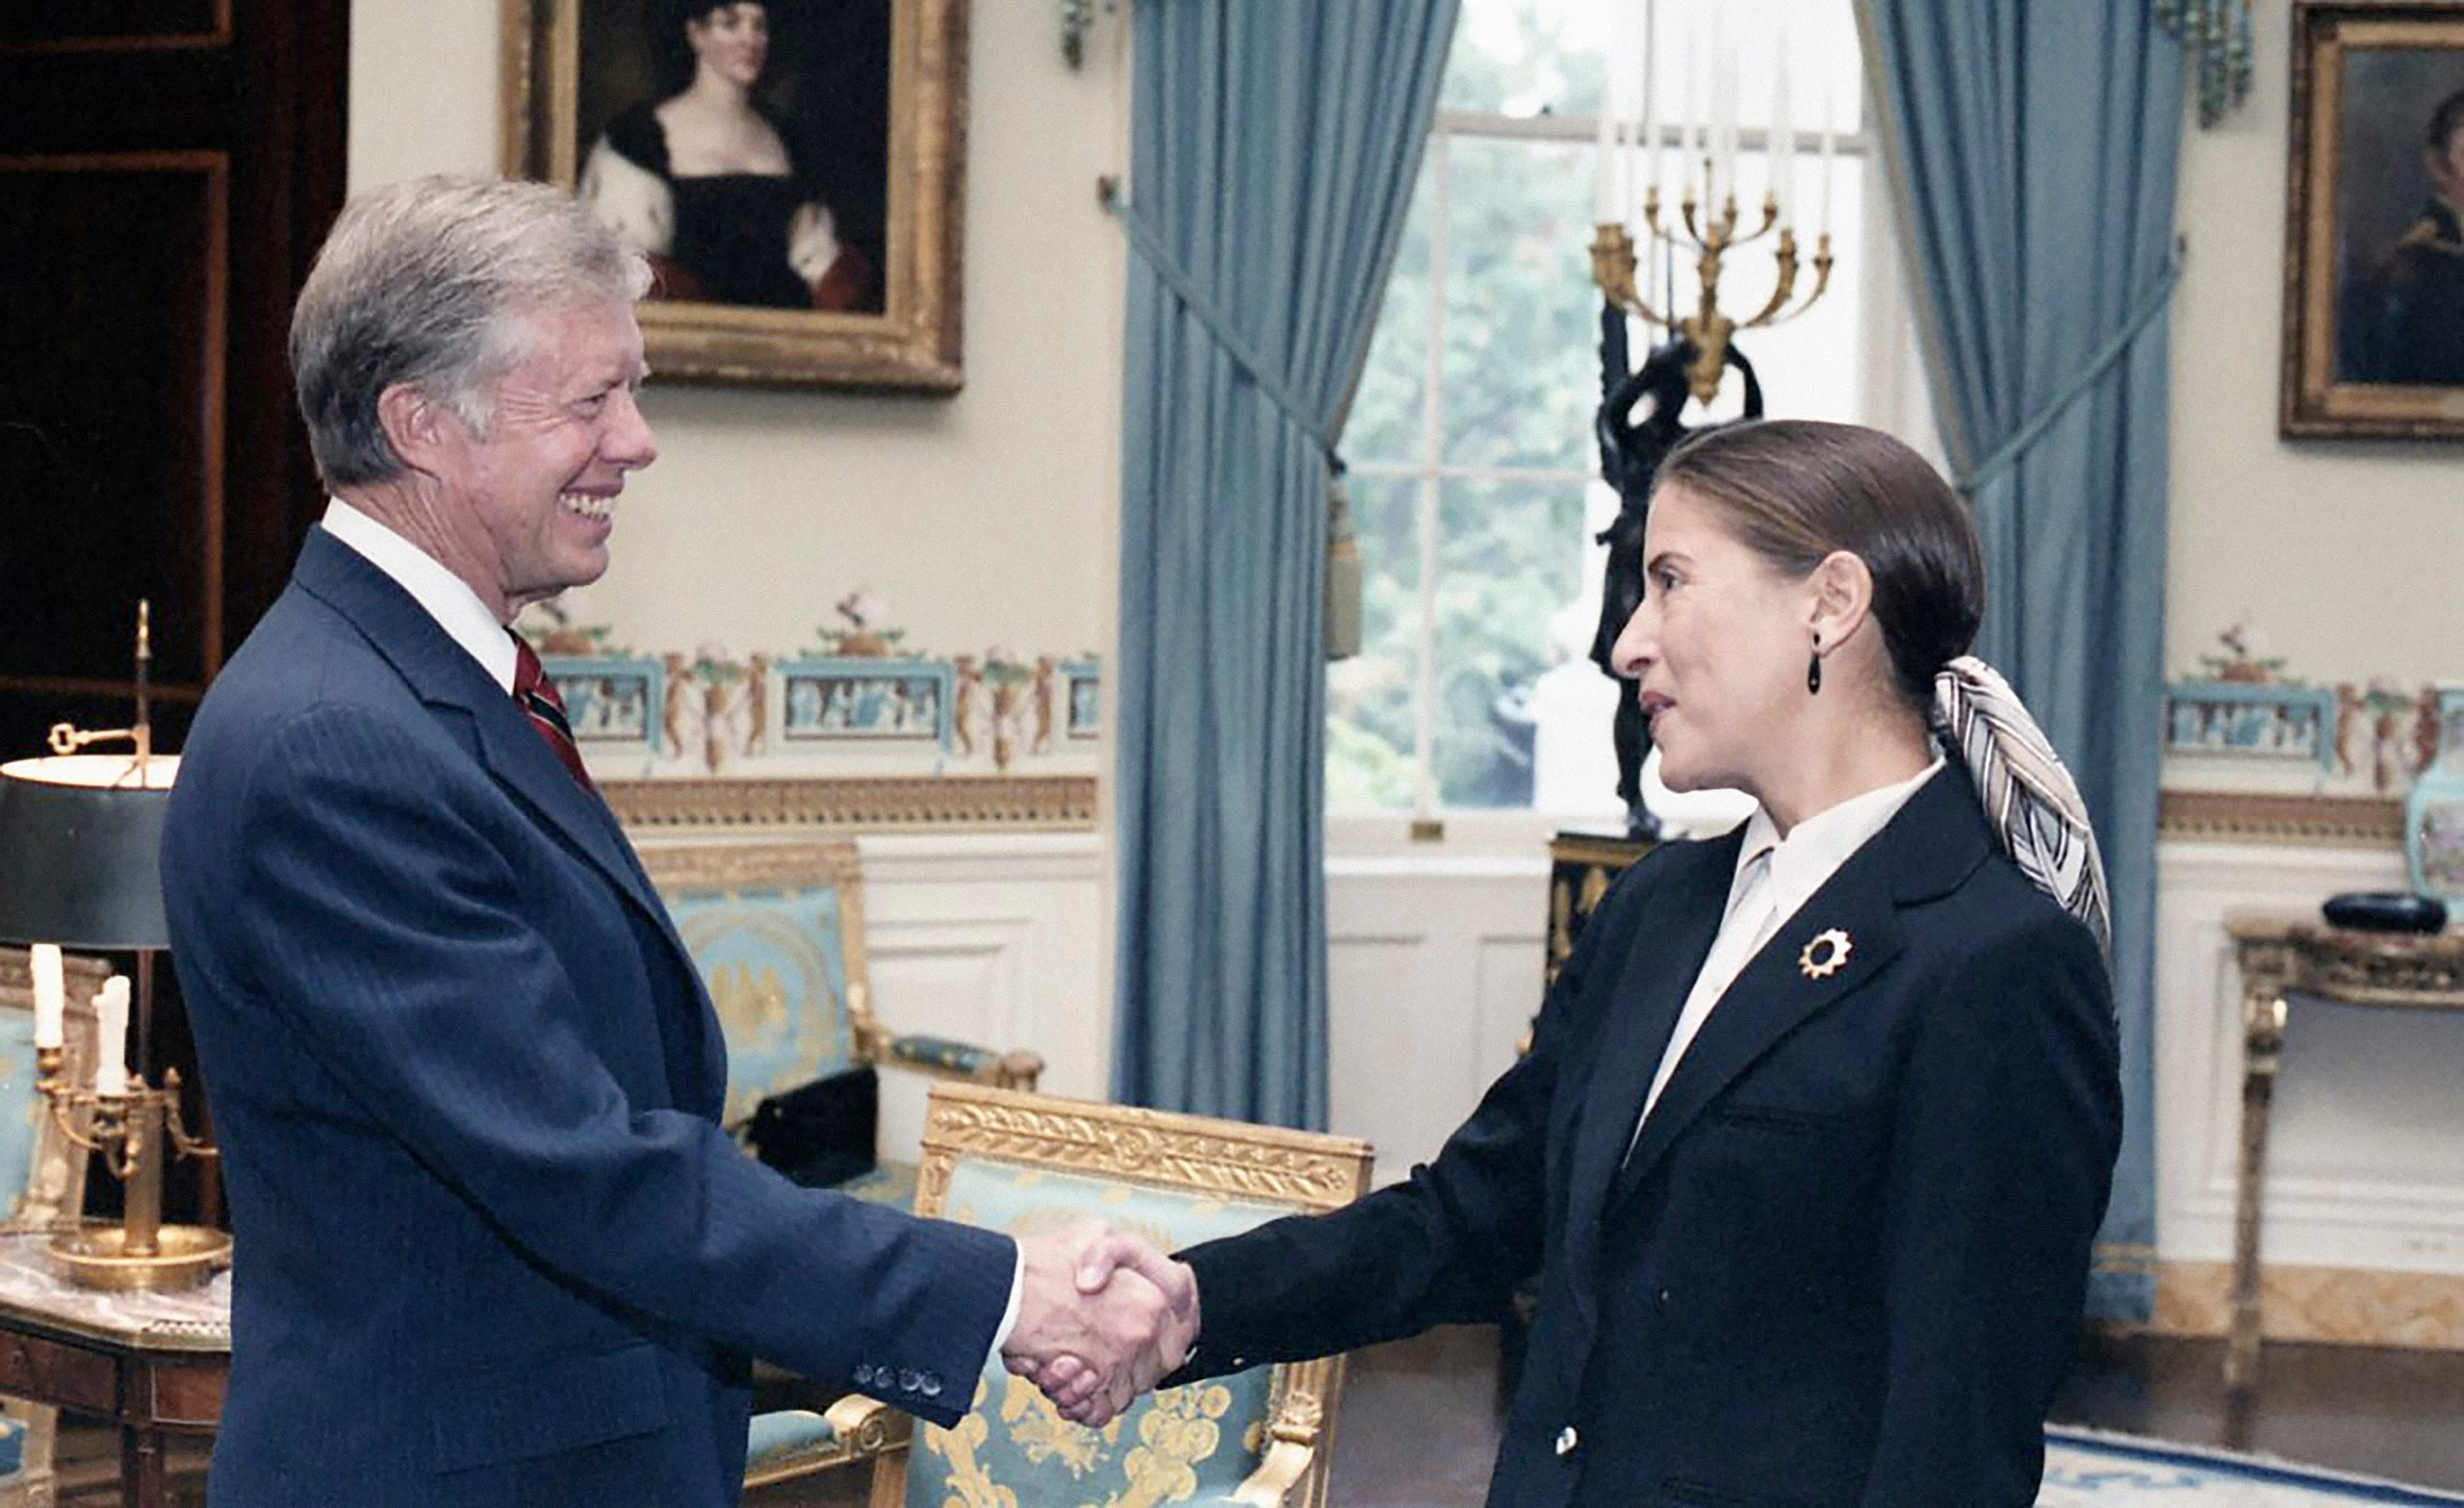 U.S. President Jimmy Carter with Ruth Bader Ginsburg at White House Reception for Women Federal Judges, Washington, D.C., USA, Jimmy Carter's Presidential Photographs, White House Staff Photographers Collection, October 3, 1980